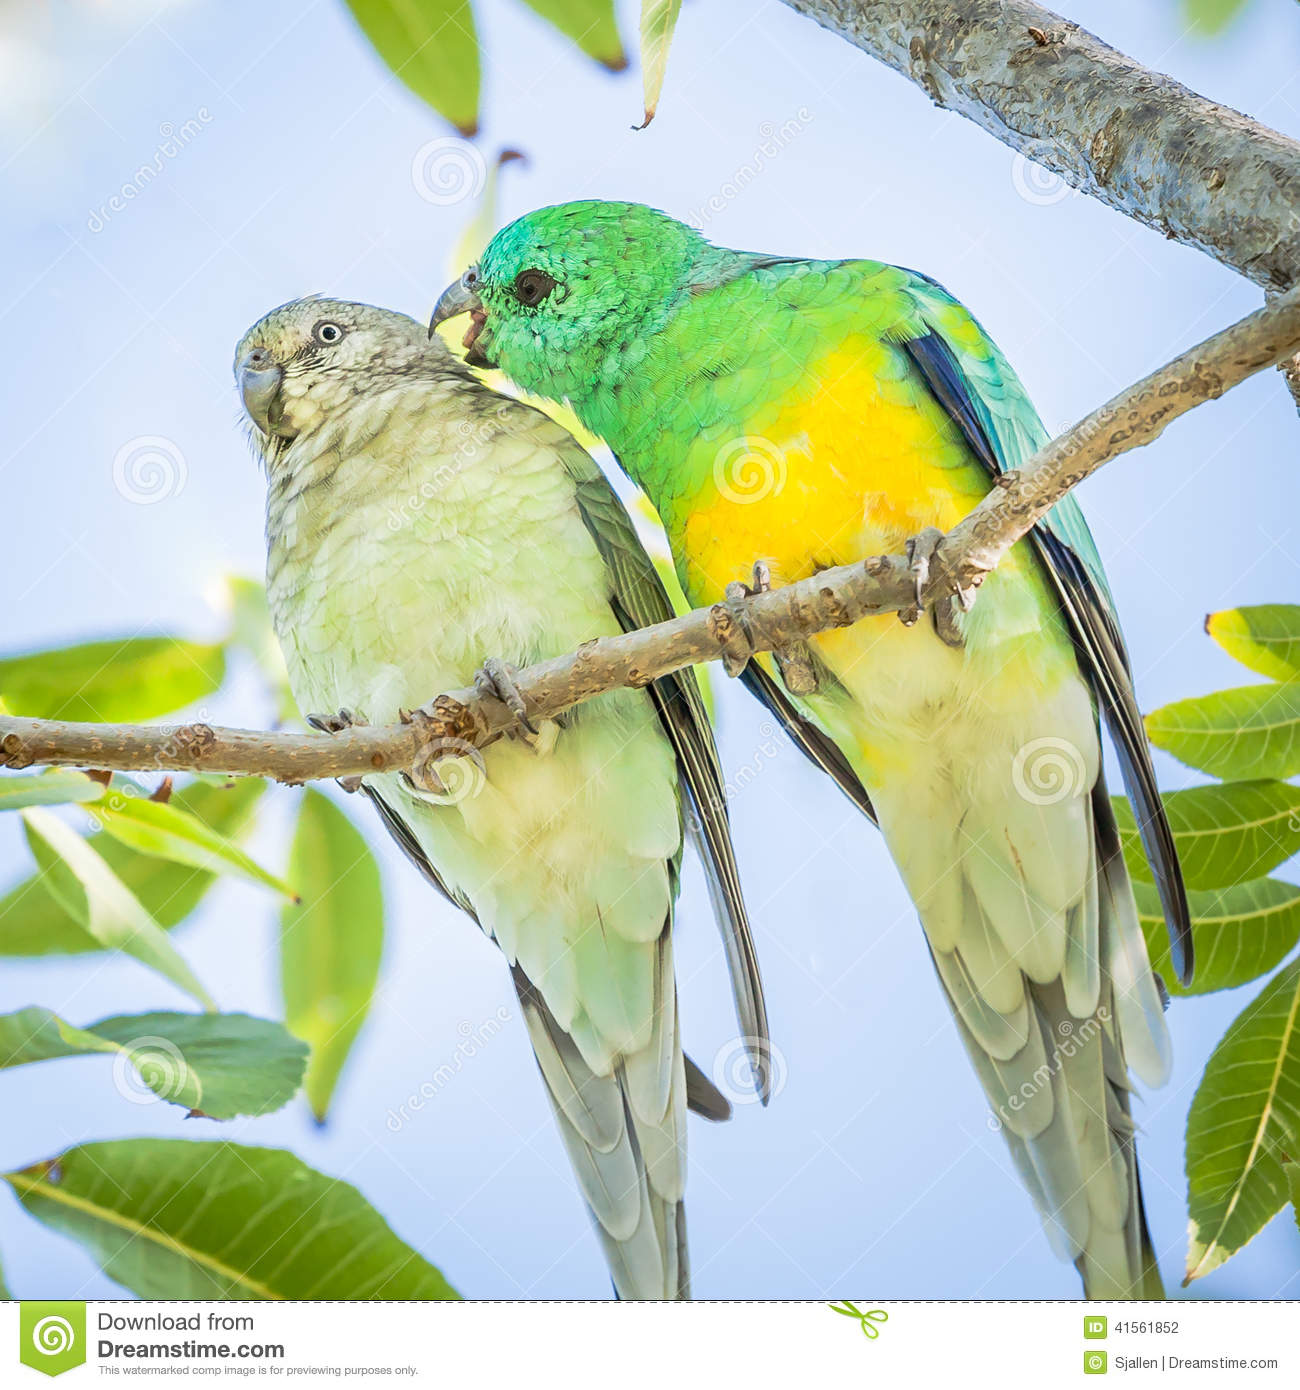 Red-rumped Parrot clipart #20, Download drawings